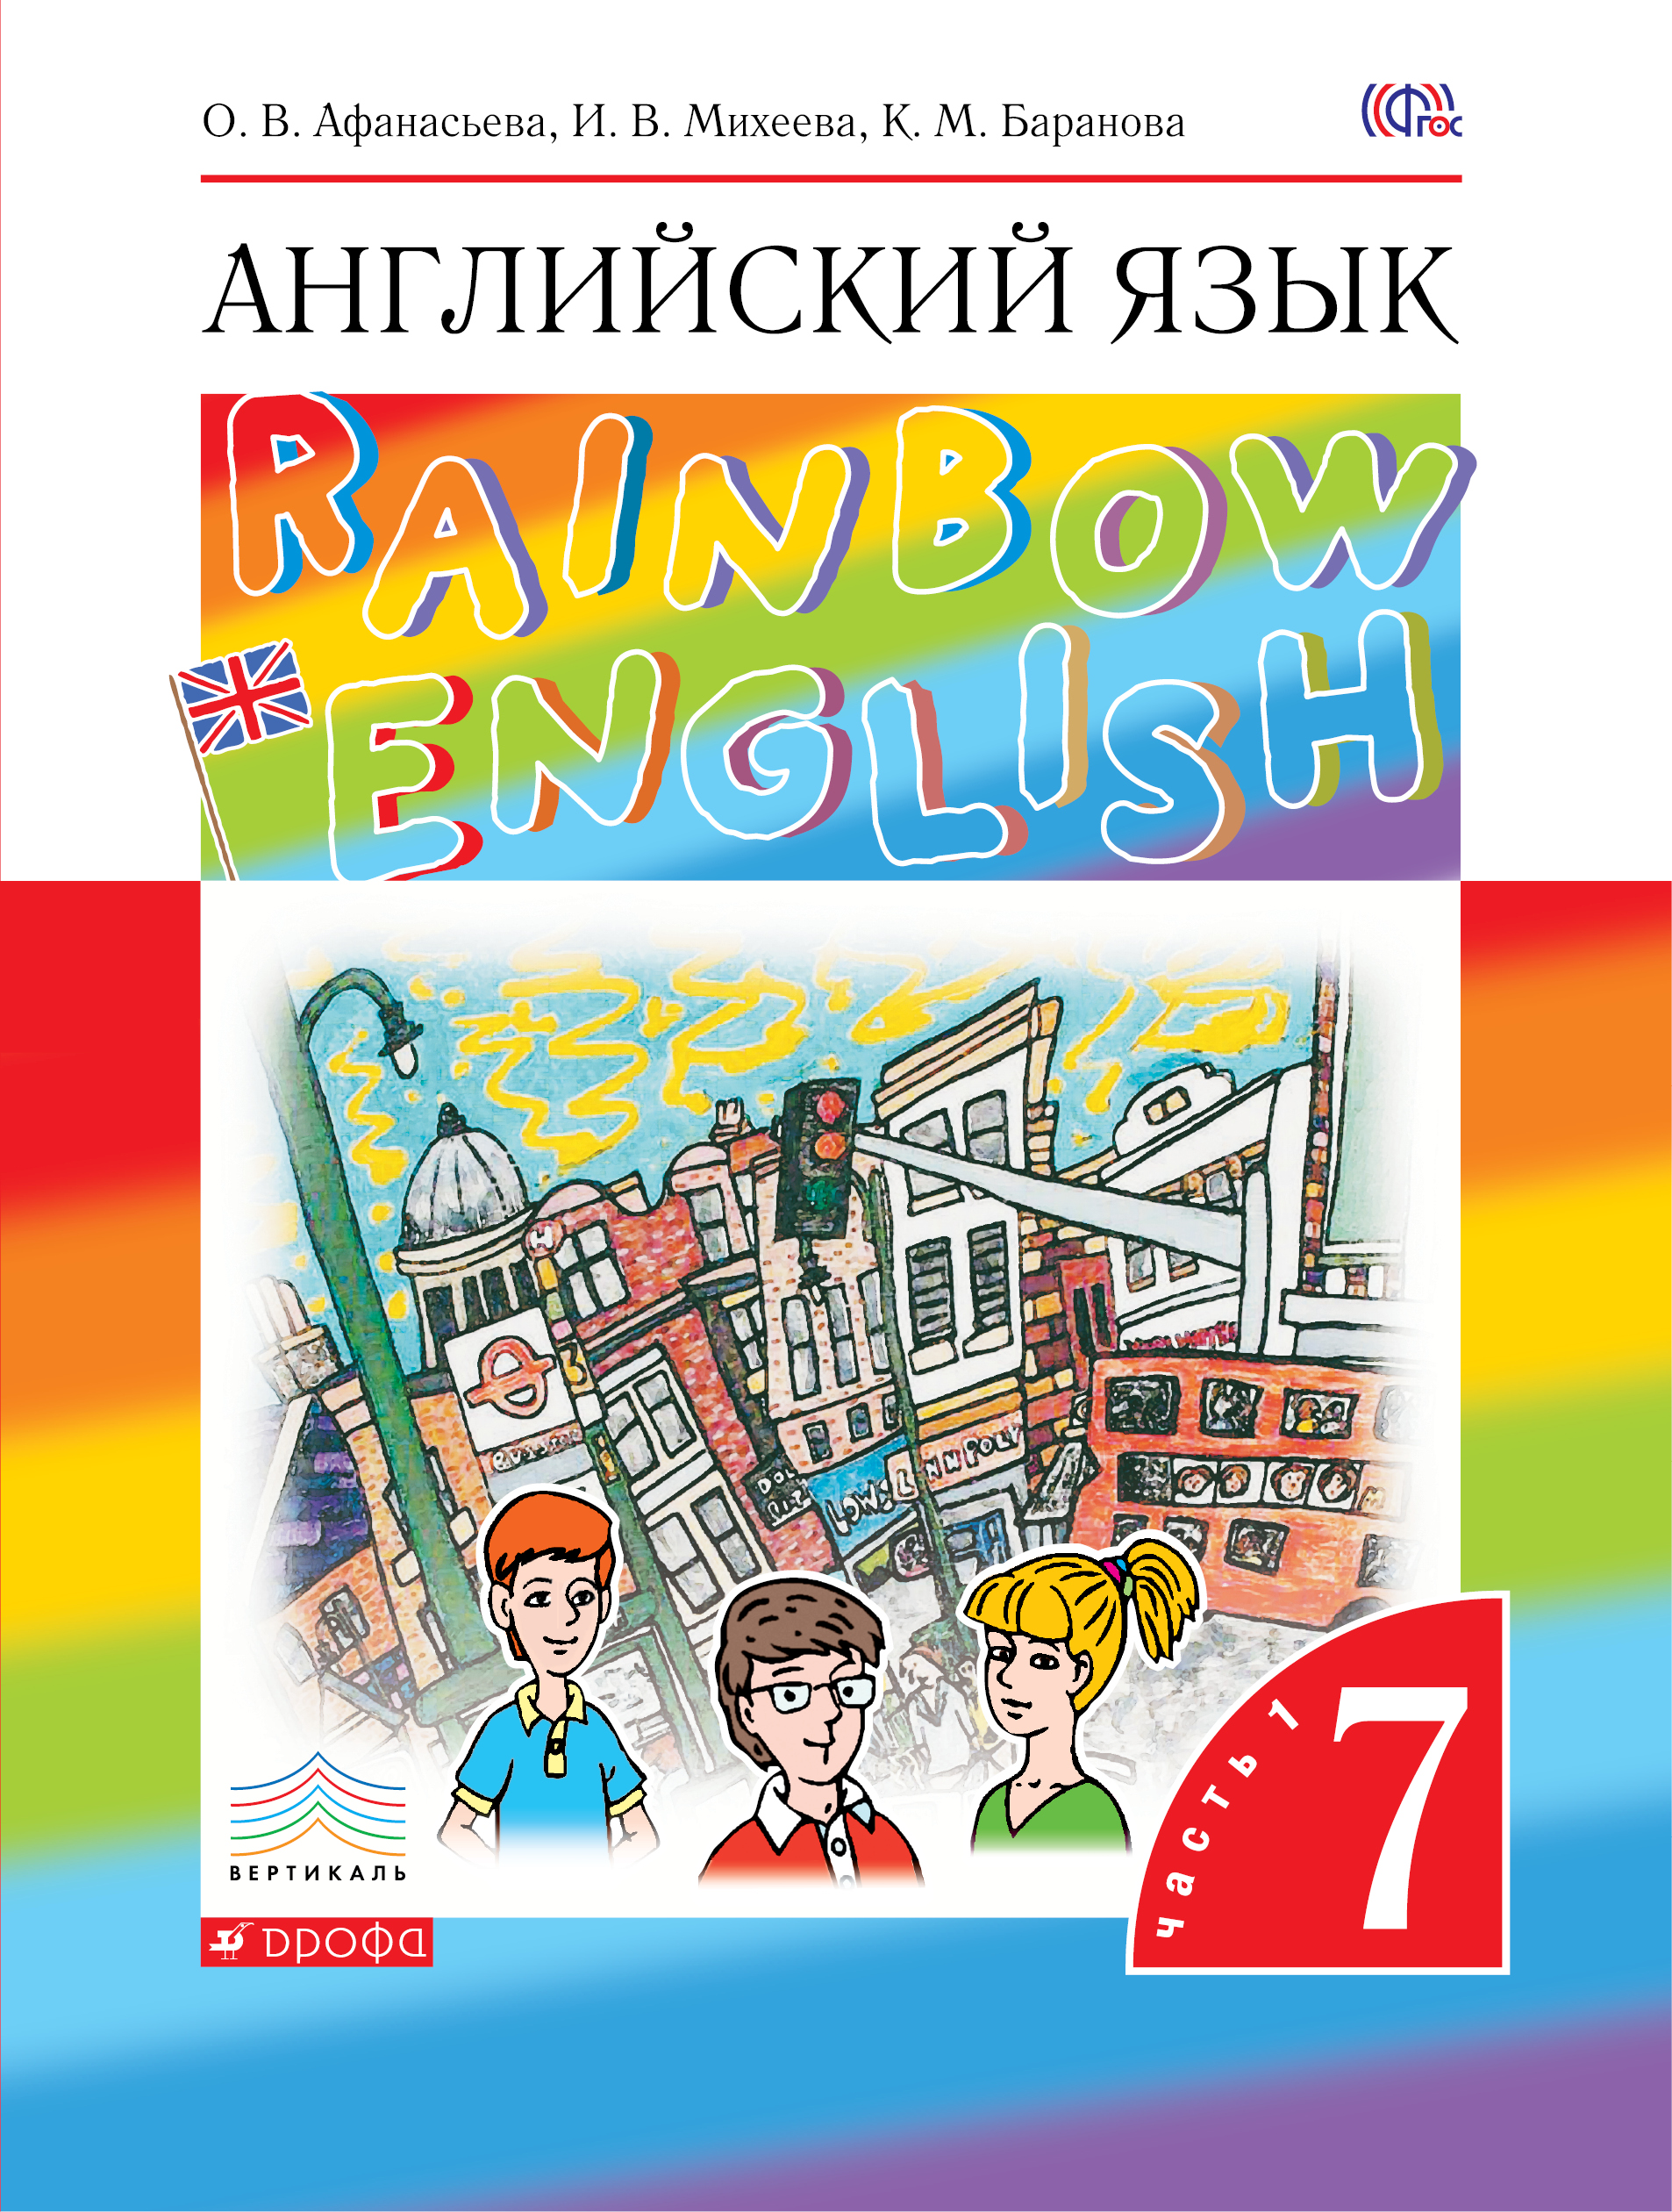 Гдз для книги э.с дудорова practical course of conversation english